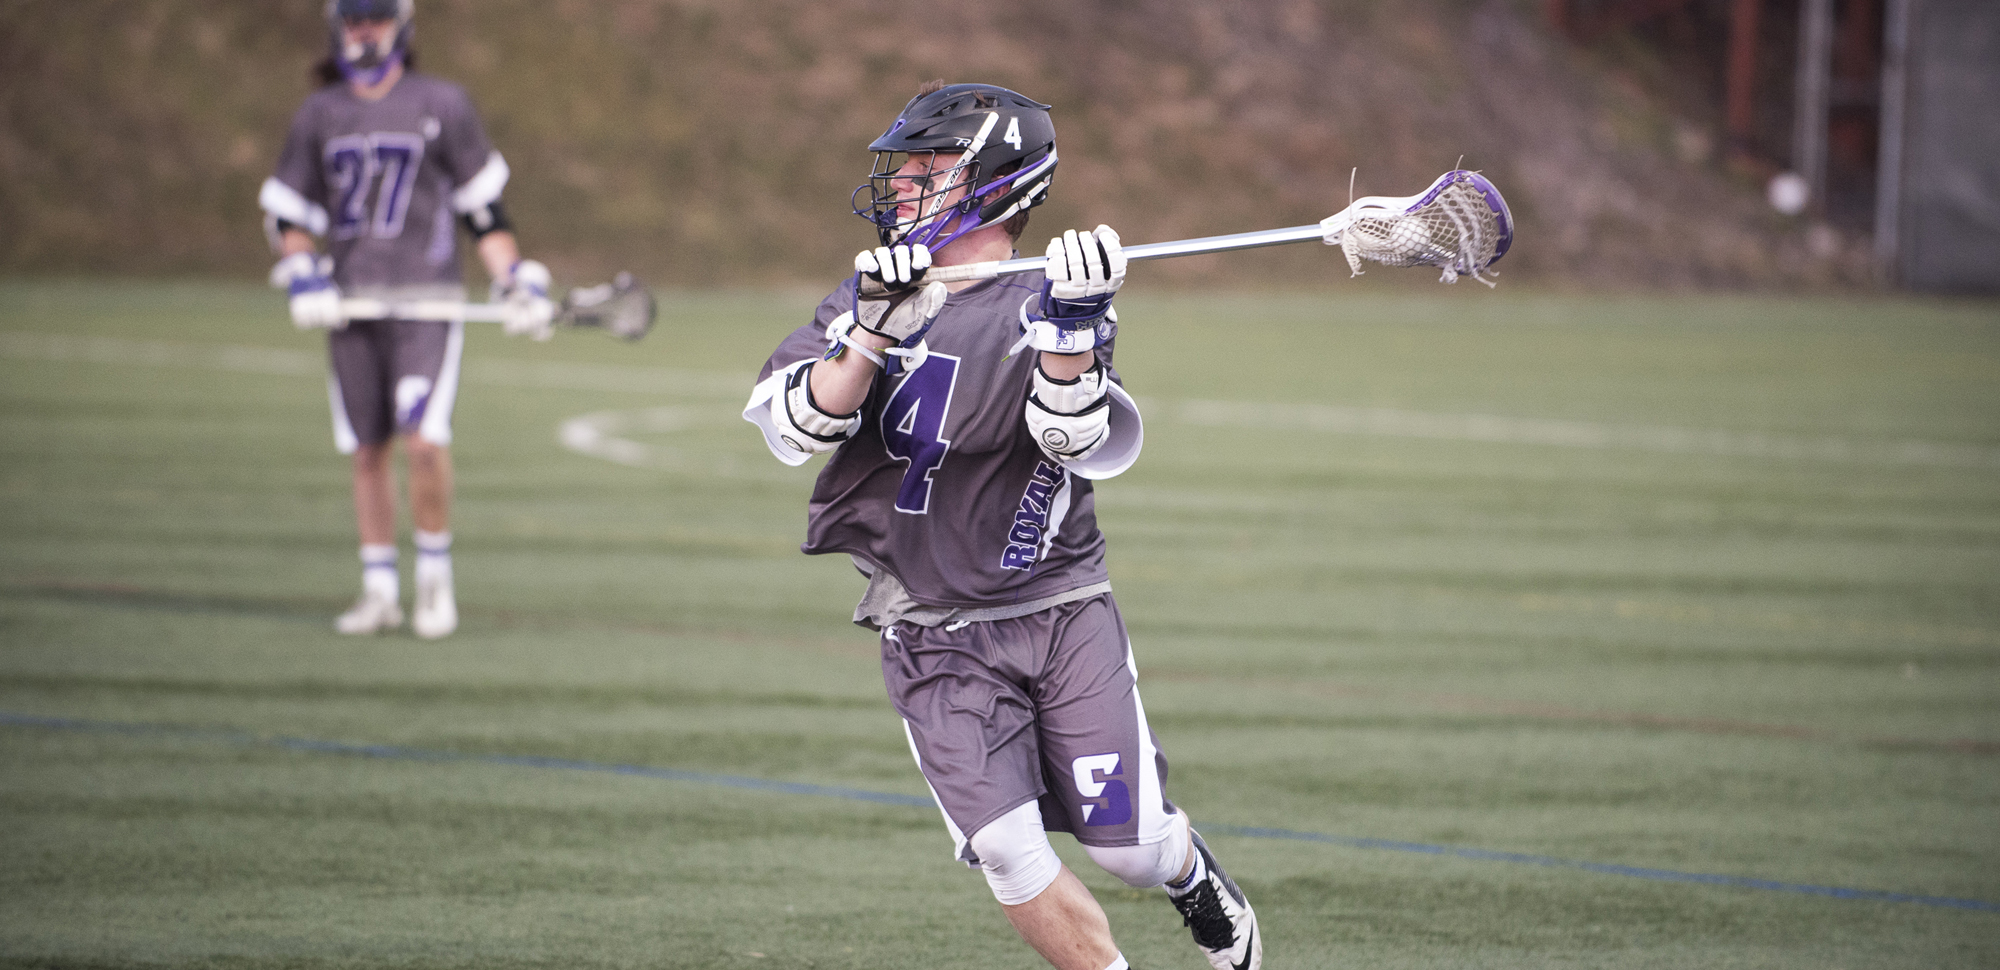 Junior attackman Matt Carfaro leads the Royals with 28 points despite missing six games this season.